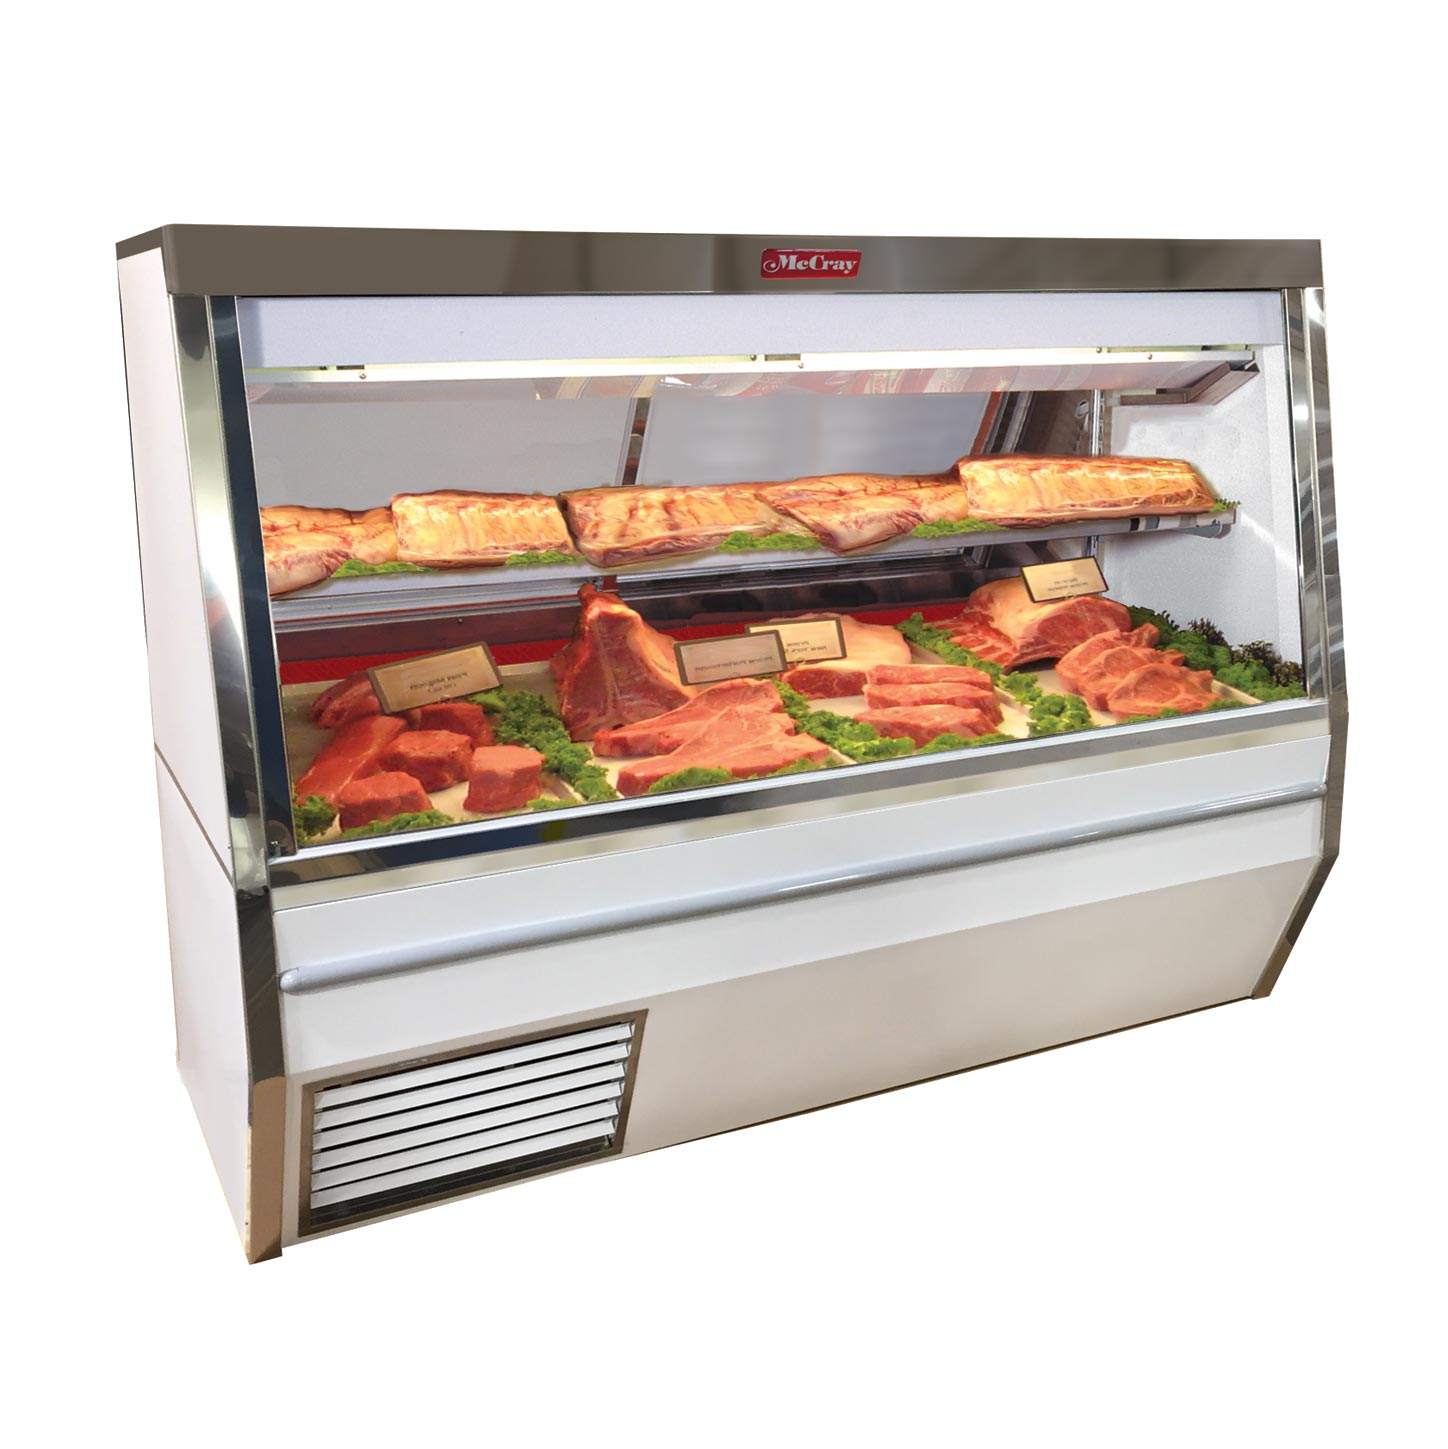 Howard-McCray SC-CMS34N-12-LED display case, red meat deli